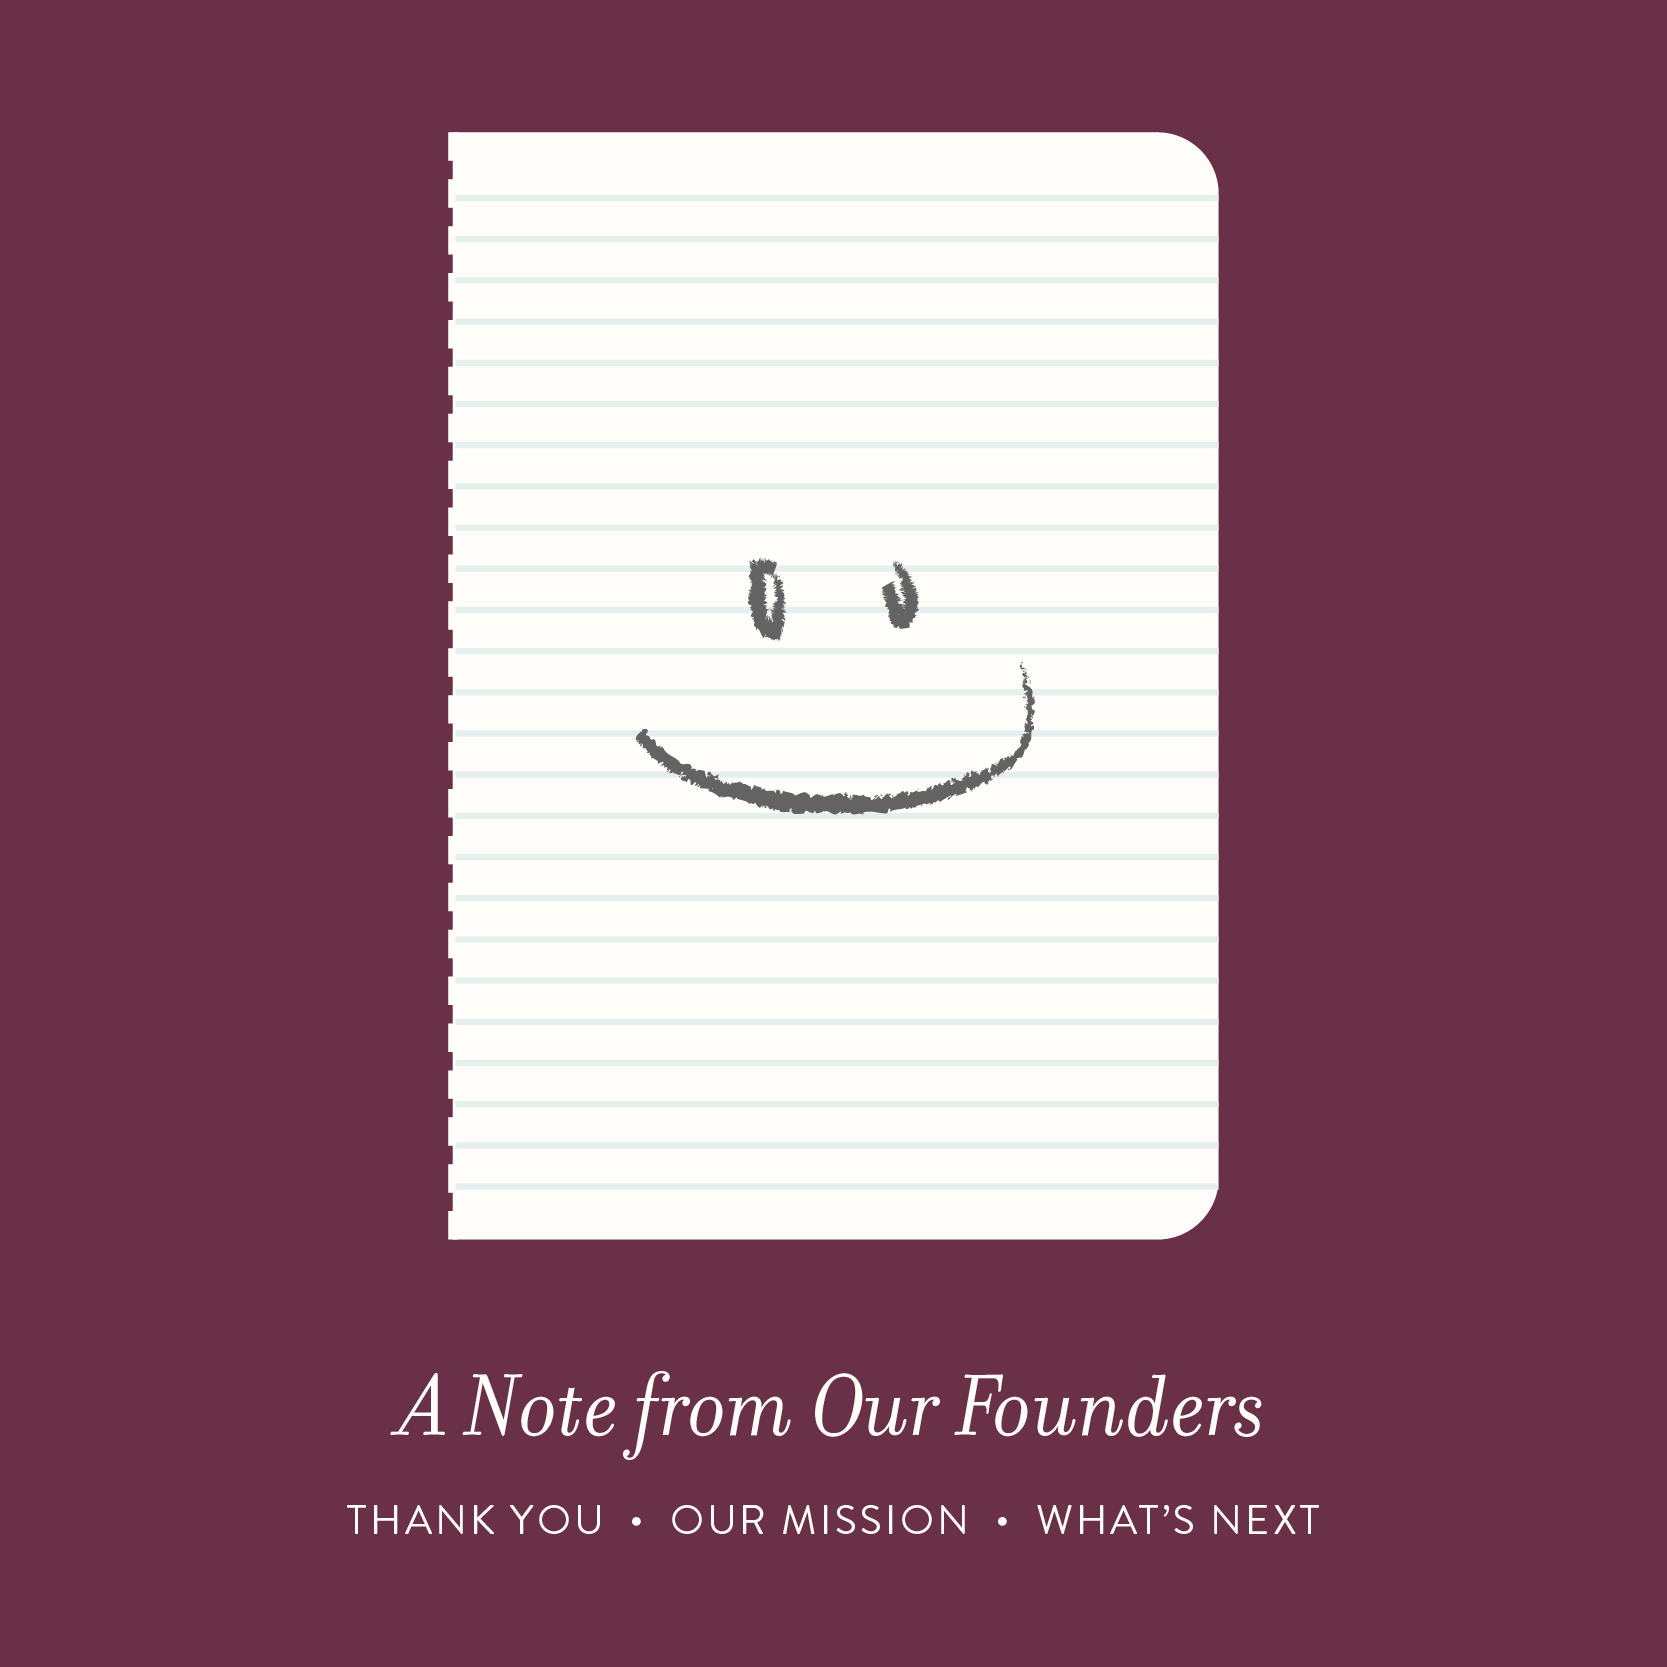 foundernote_01.png